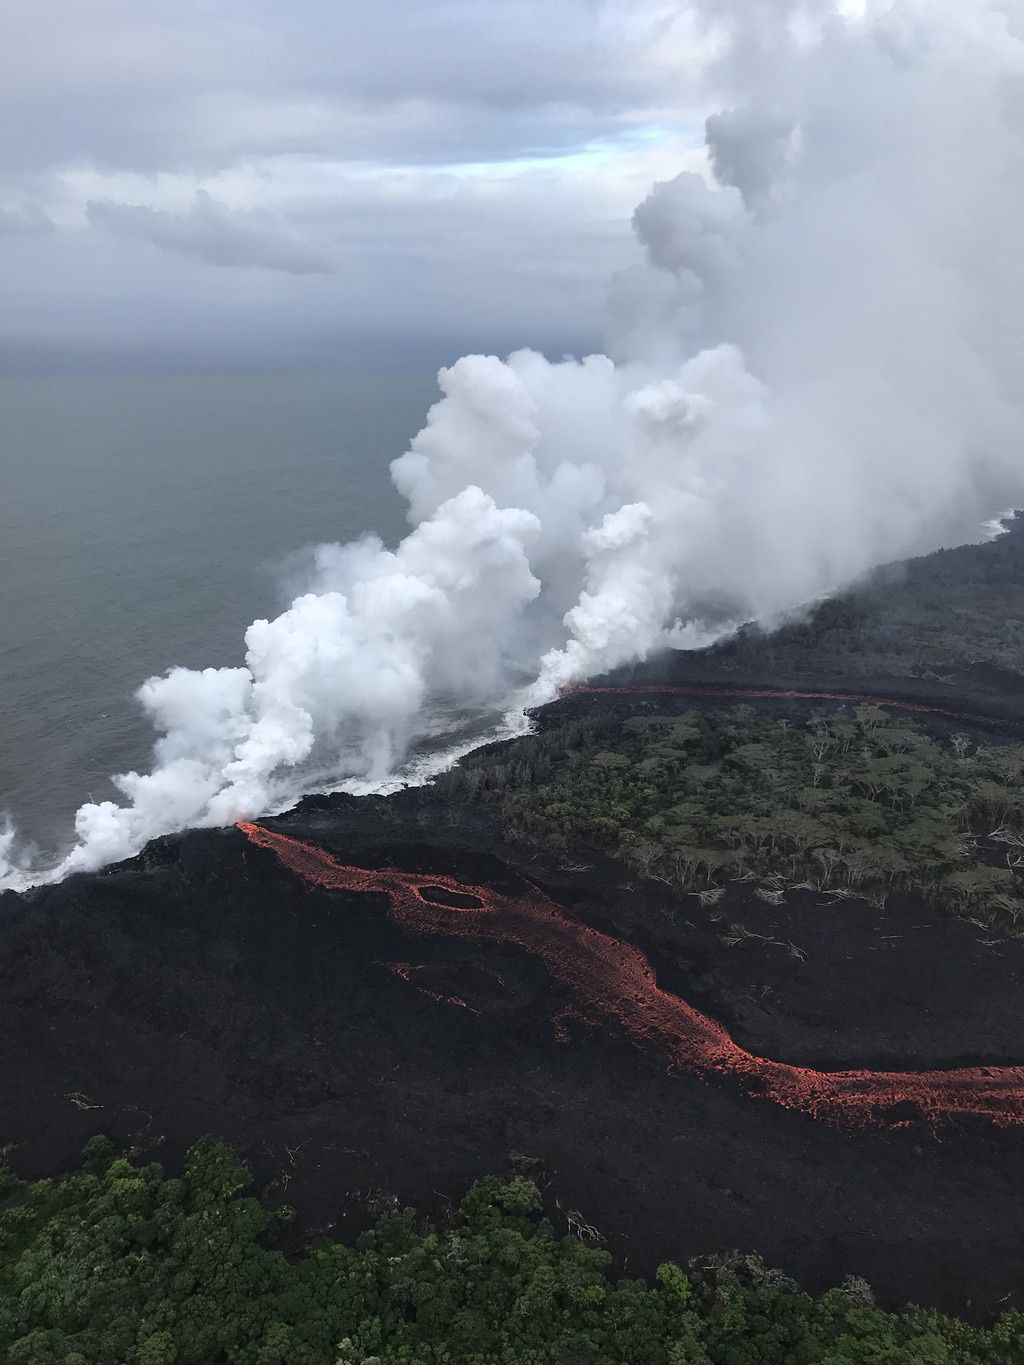 Kilauea East Rift Zone: Lava continues to enter into the sea in Two Locations - USGS Photo